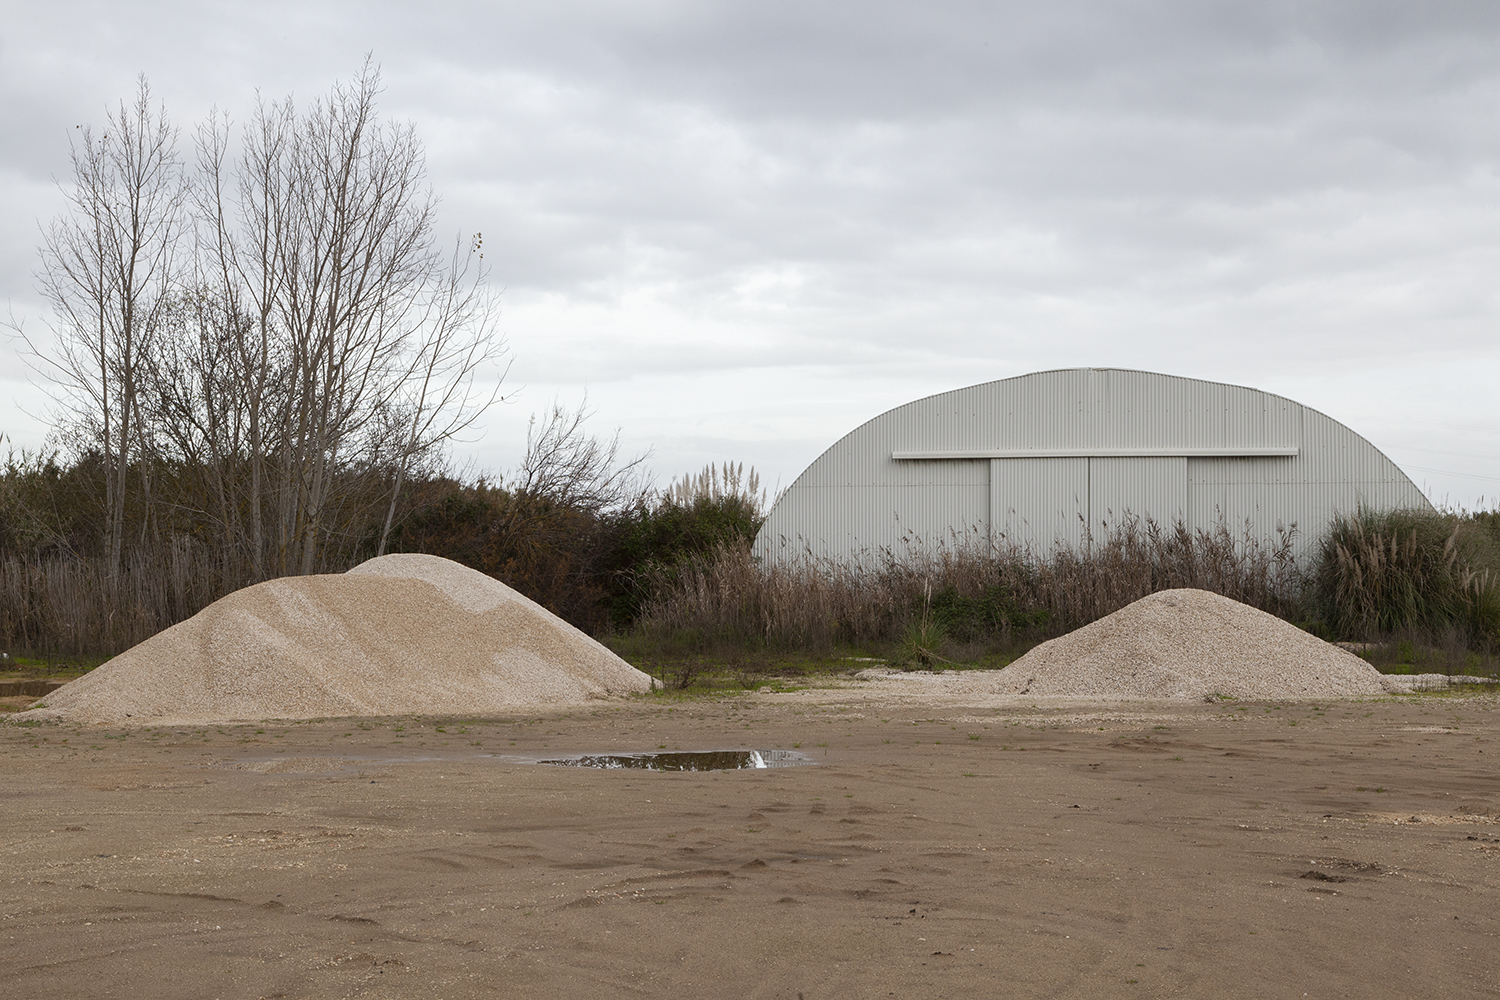 carina martins, untitled - sand heaps trees and warehouse in a winter landscape